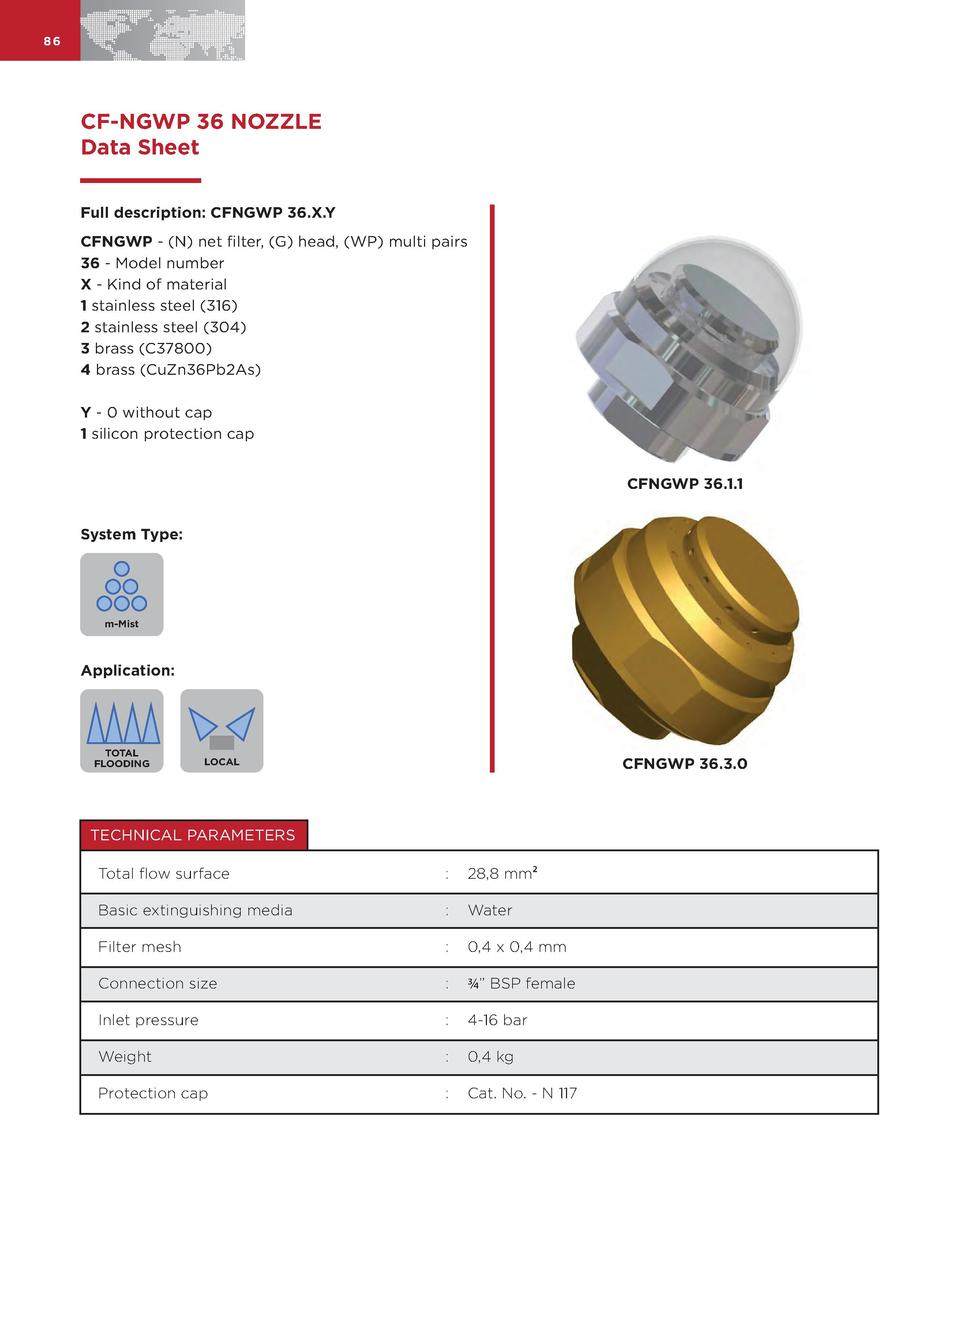 86  CF-NGWP 36 NOZZLE Data Sheet Full description  CFNGWP 36.X.Y CFNGWP -  N  net filter,  G  head,  WP  multi pairs 36 - ...